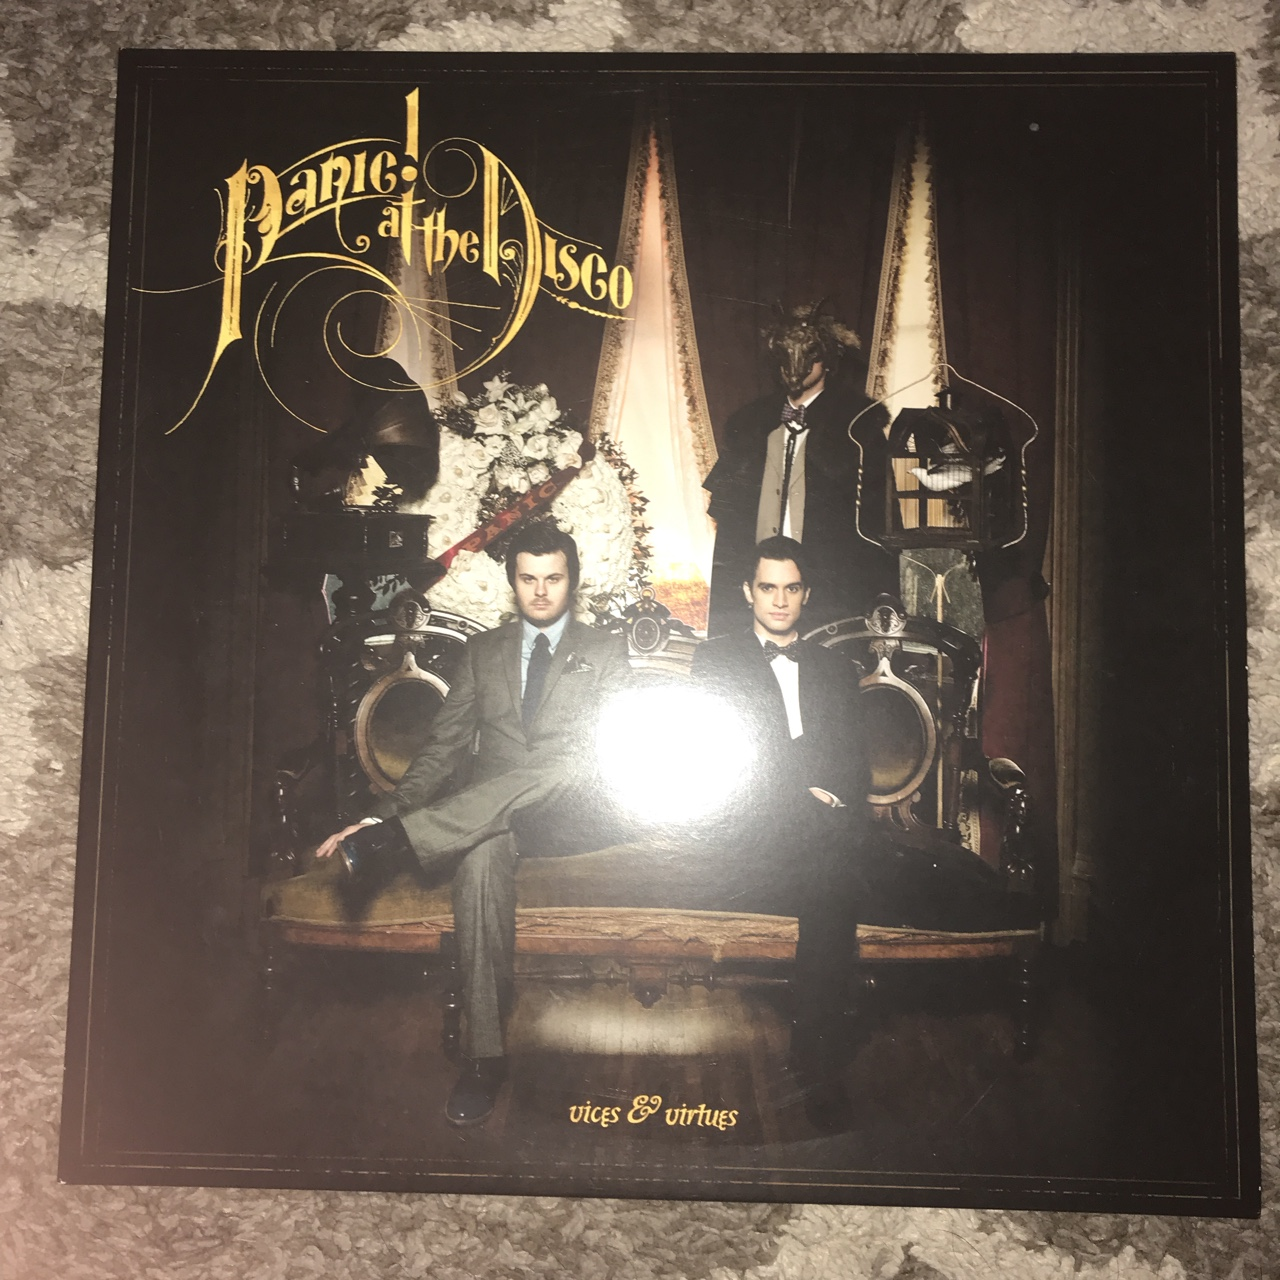 e81f147c Vices & Virtues Panic! at the Disco vinyl - perfect only on - Depop